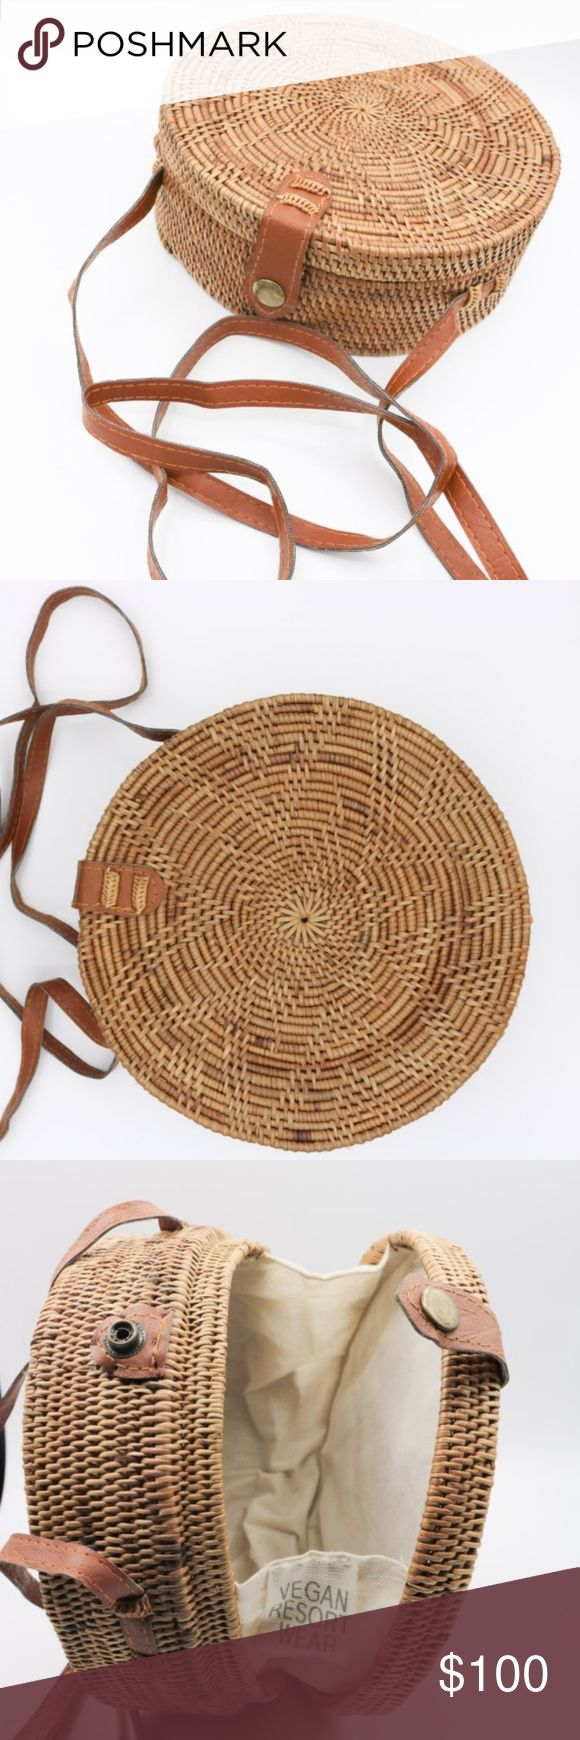 Ata straw bag from Bali Diameter 8 inched. Each bags come with a dust bag.  Handmade by artisans in Bali.  Straps made of vegan leather, so 100% vegan and cruelty-free! Bags Crossbody Bags